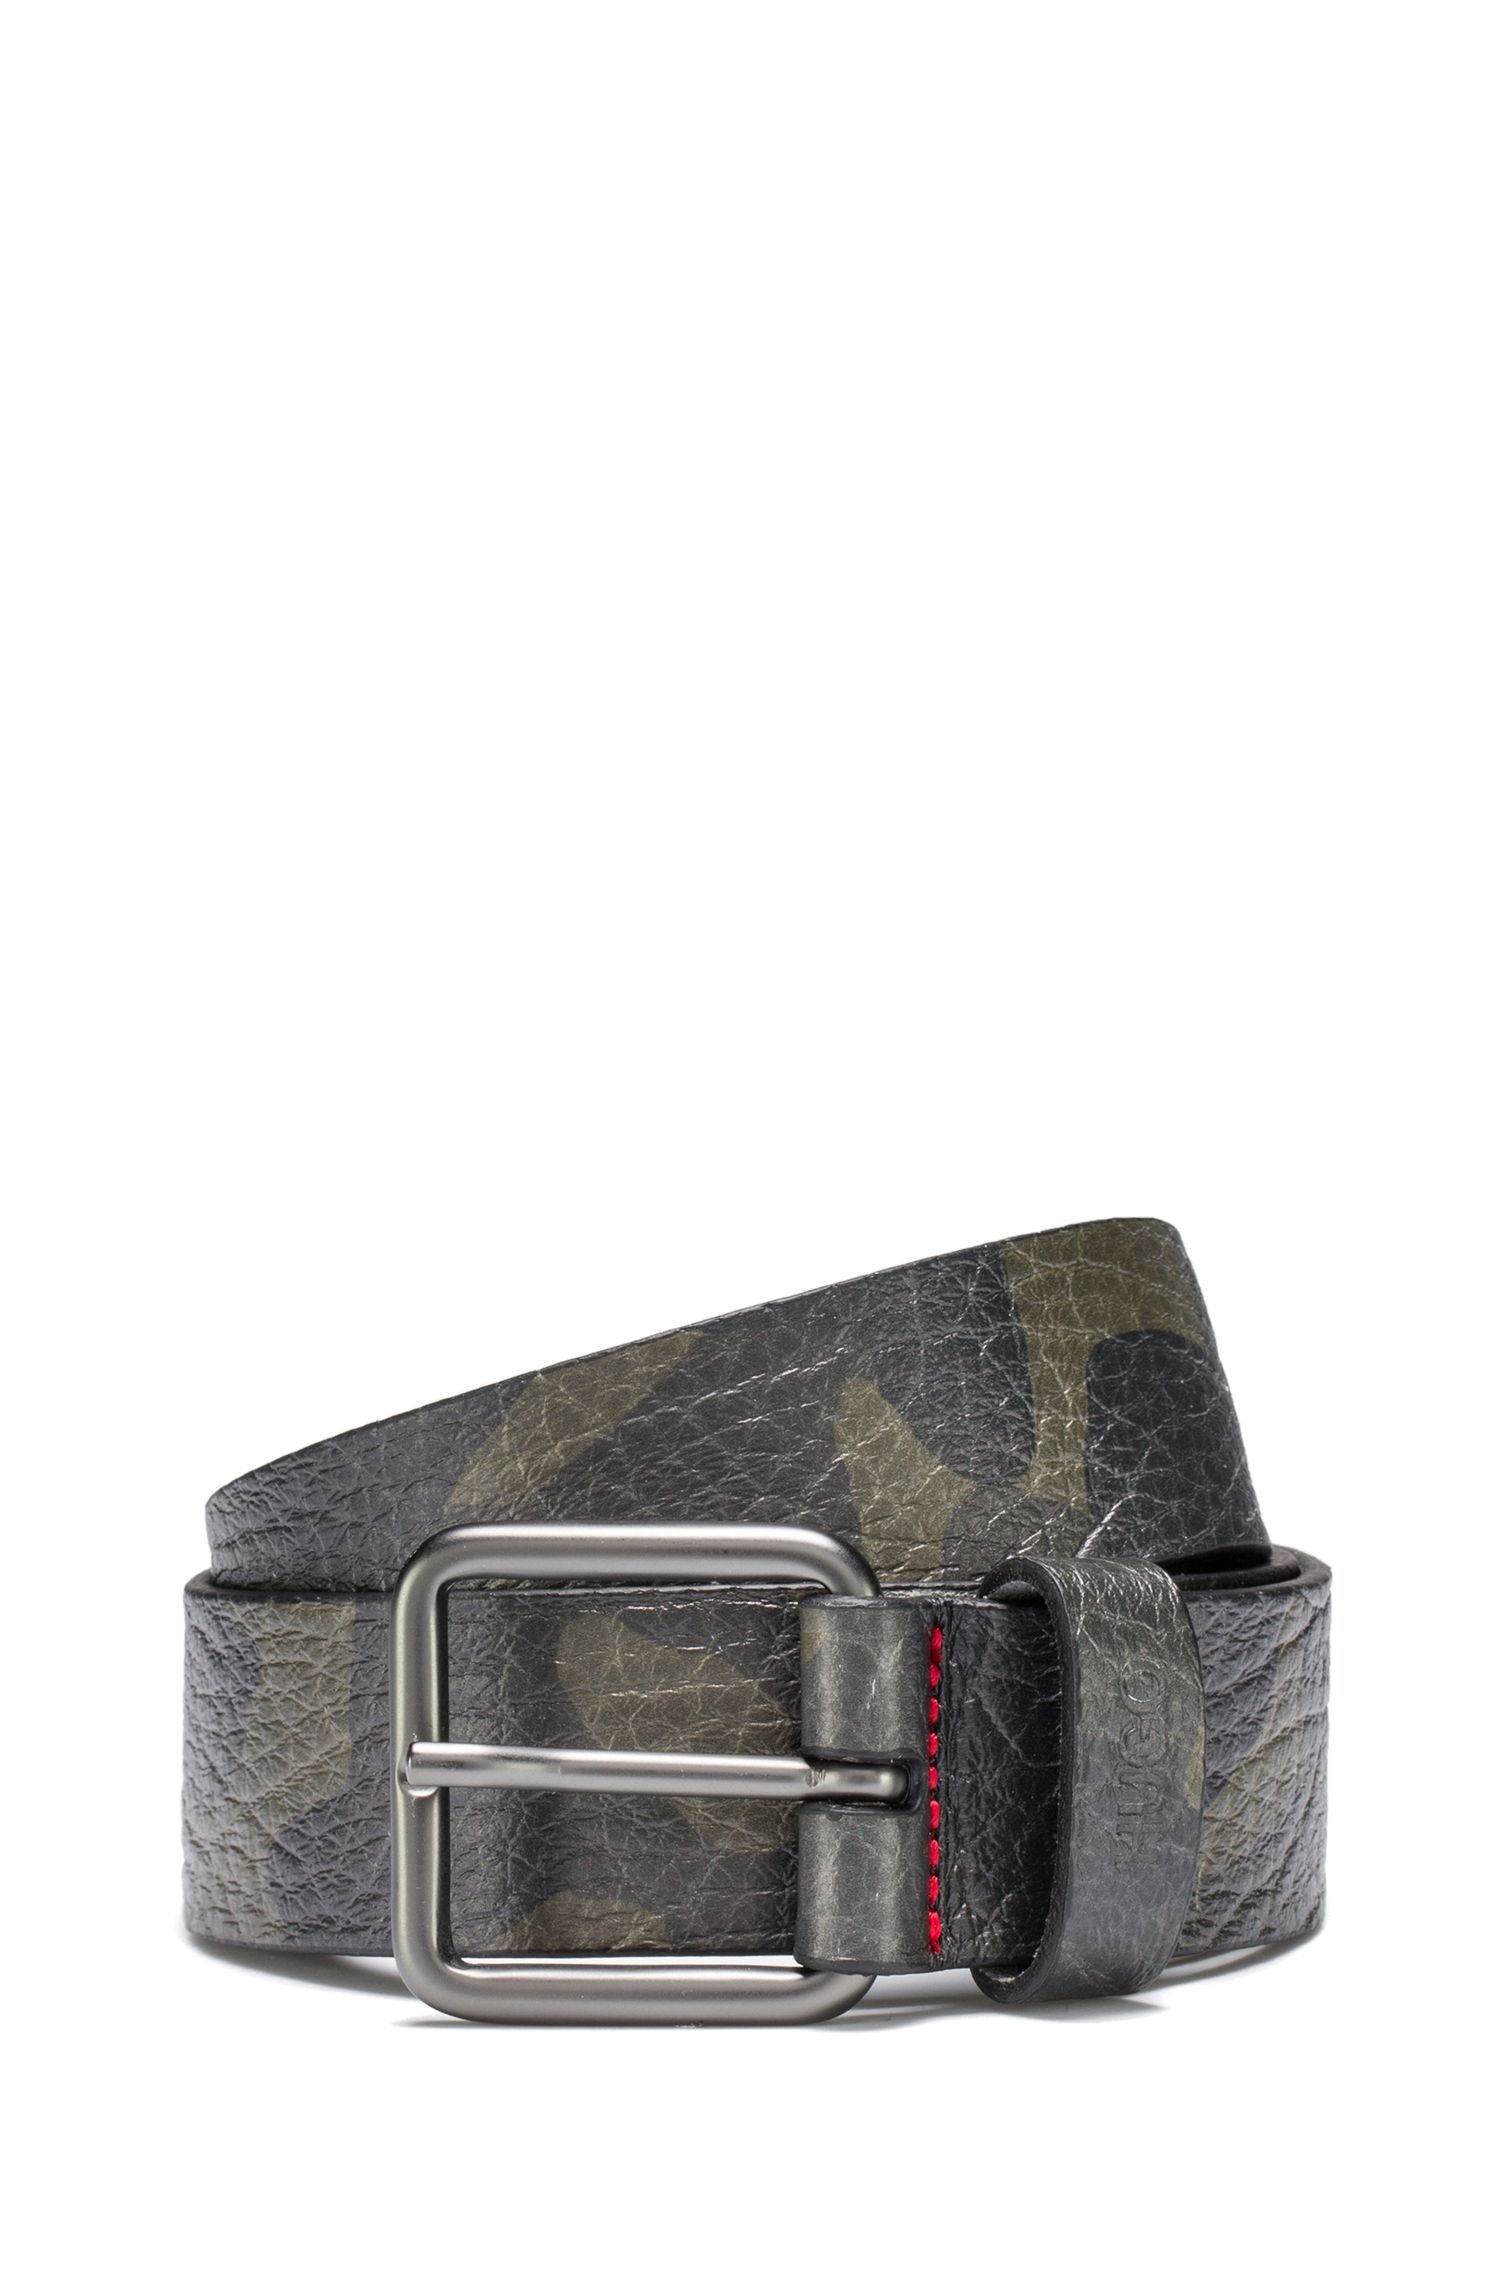 Camouflage-print belt in grainy Italian leather, Patterned